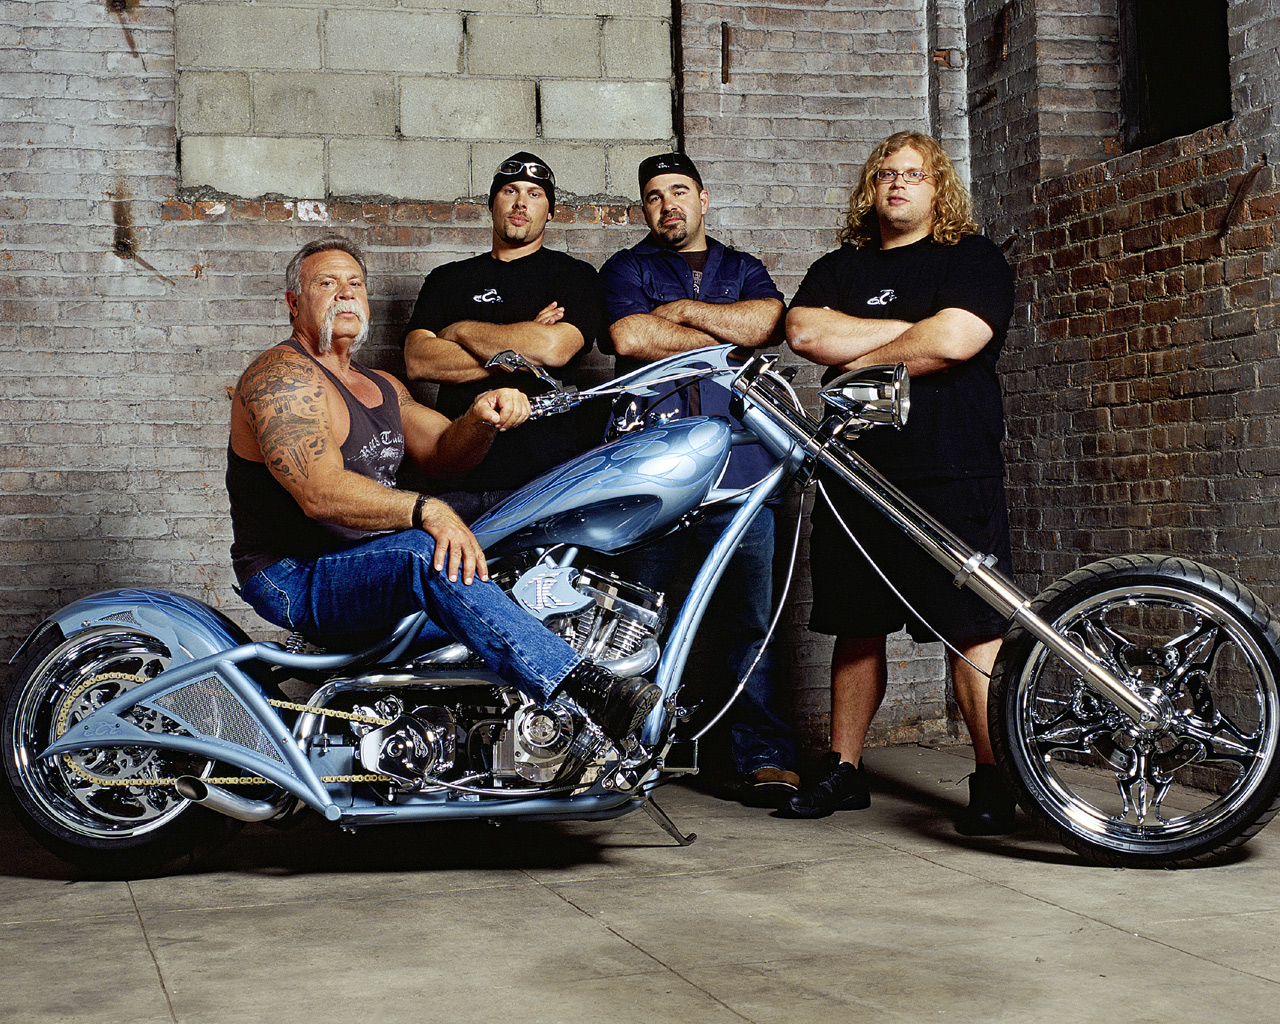 American chopper occ vrroooomm pinterest orange county choppers choppers and american chopper